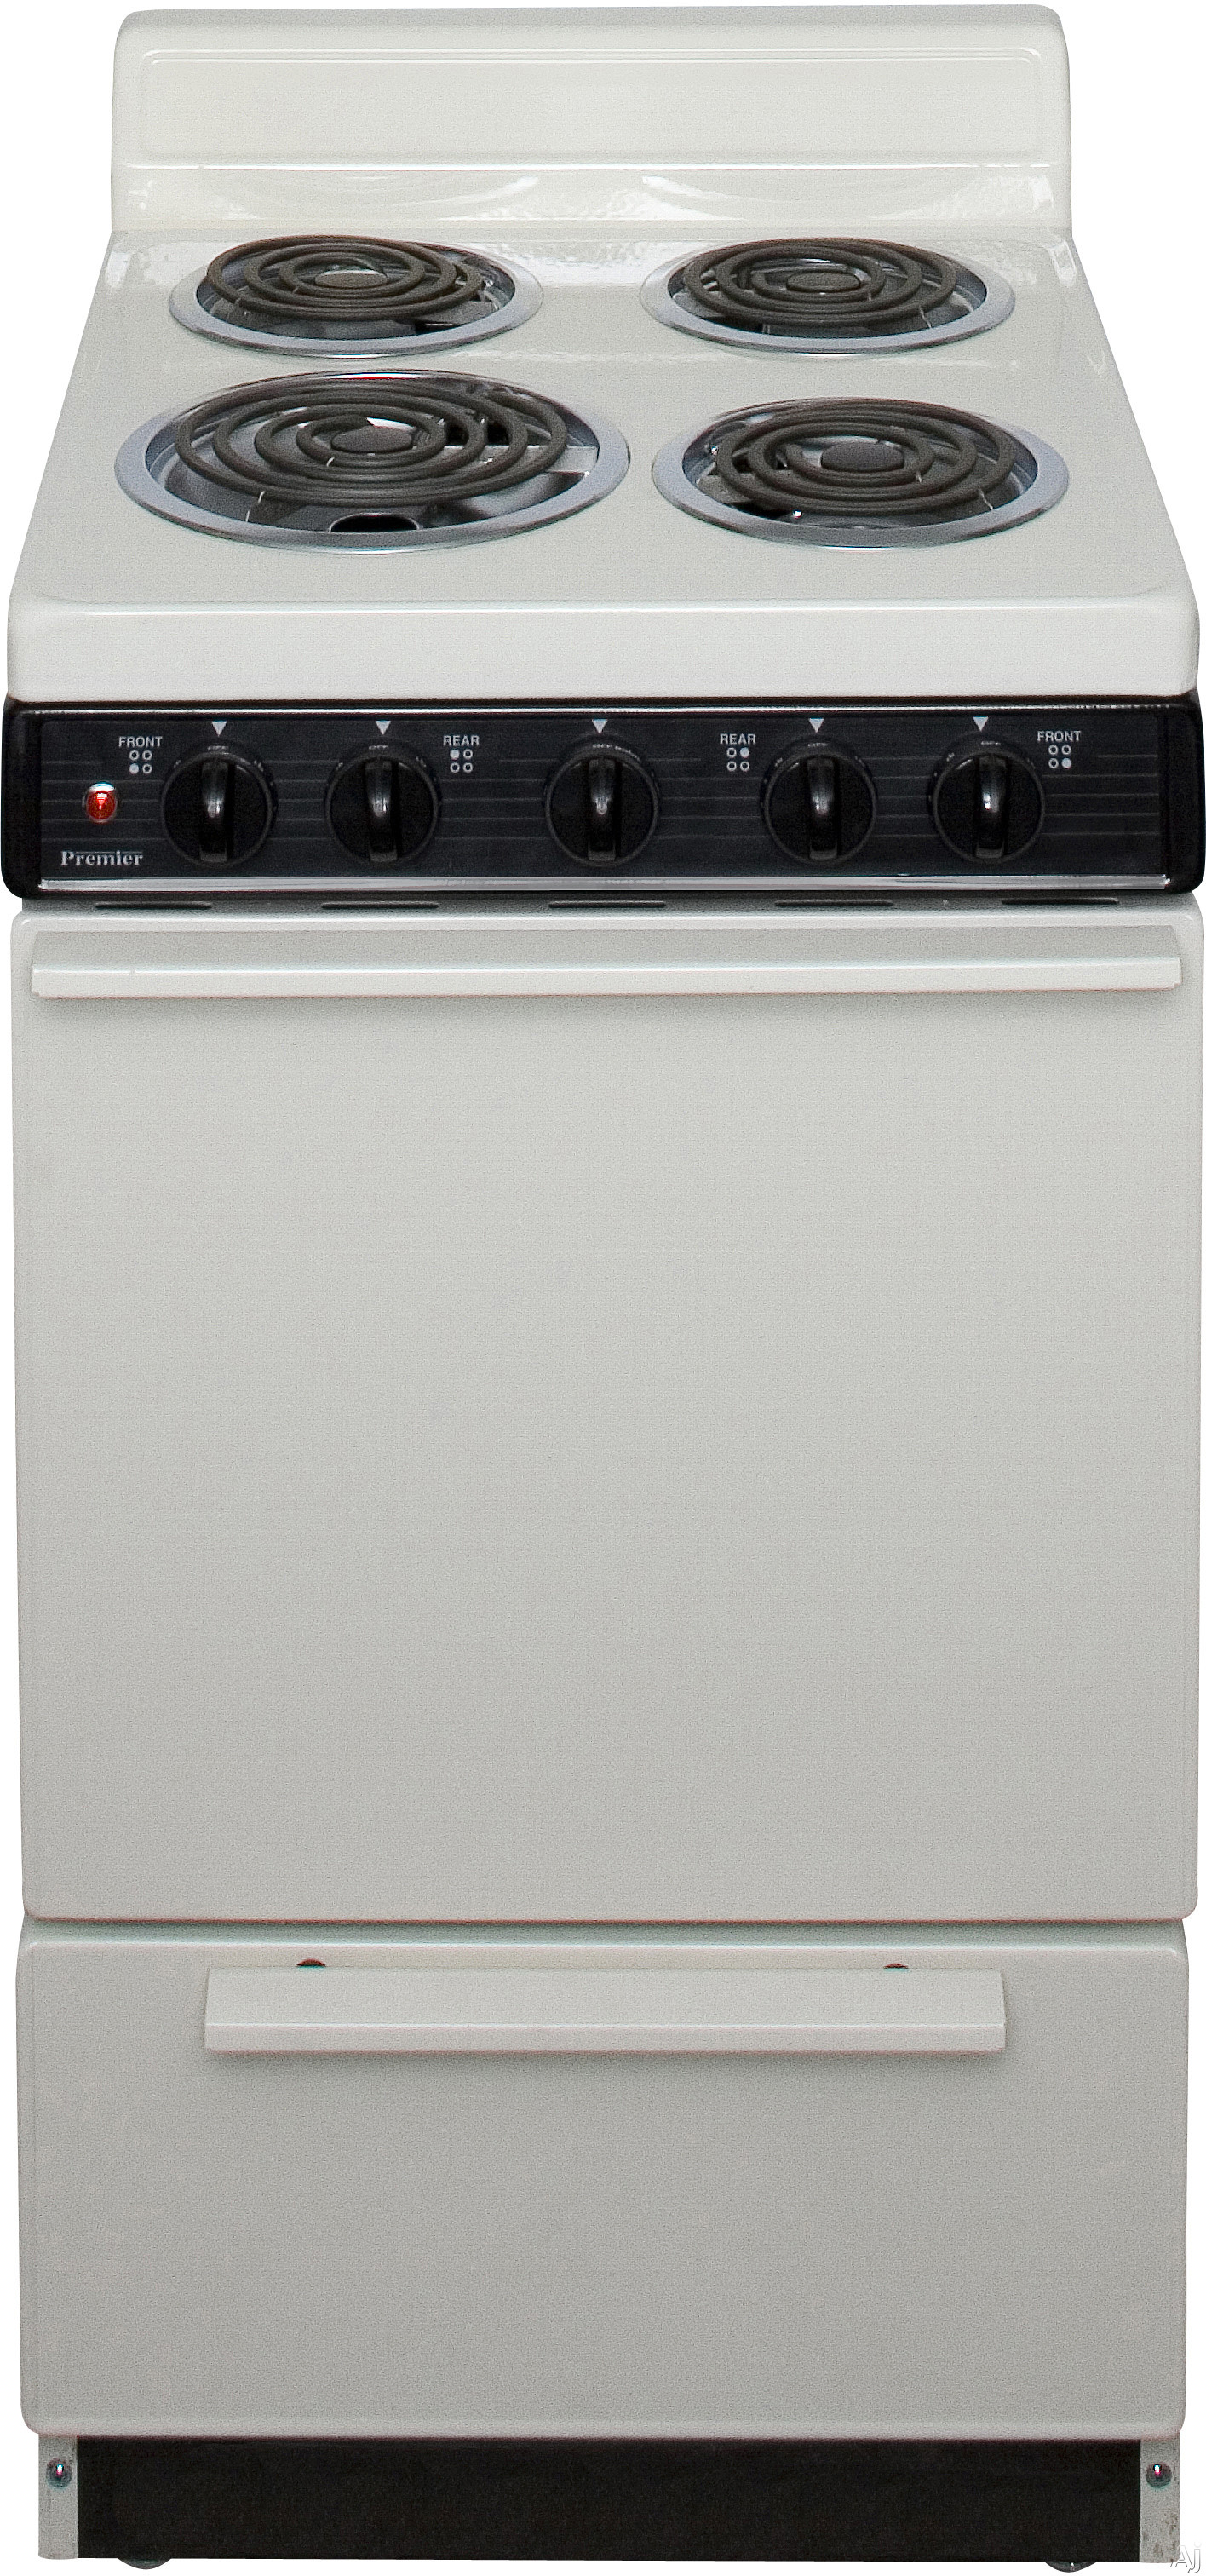 Premier EAK100T 20 Inch Freestanding Electric Range with 4 Coil Elements, 2.4 cu. ft. Manual Clean Oven, Surface Signal Light, 4 Inch Porcelain Backguard and Storage Drawer: Bisque with Black Trim